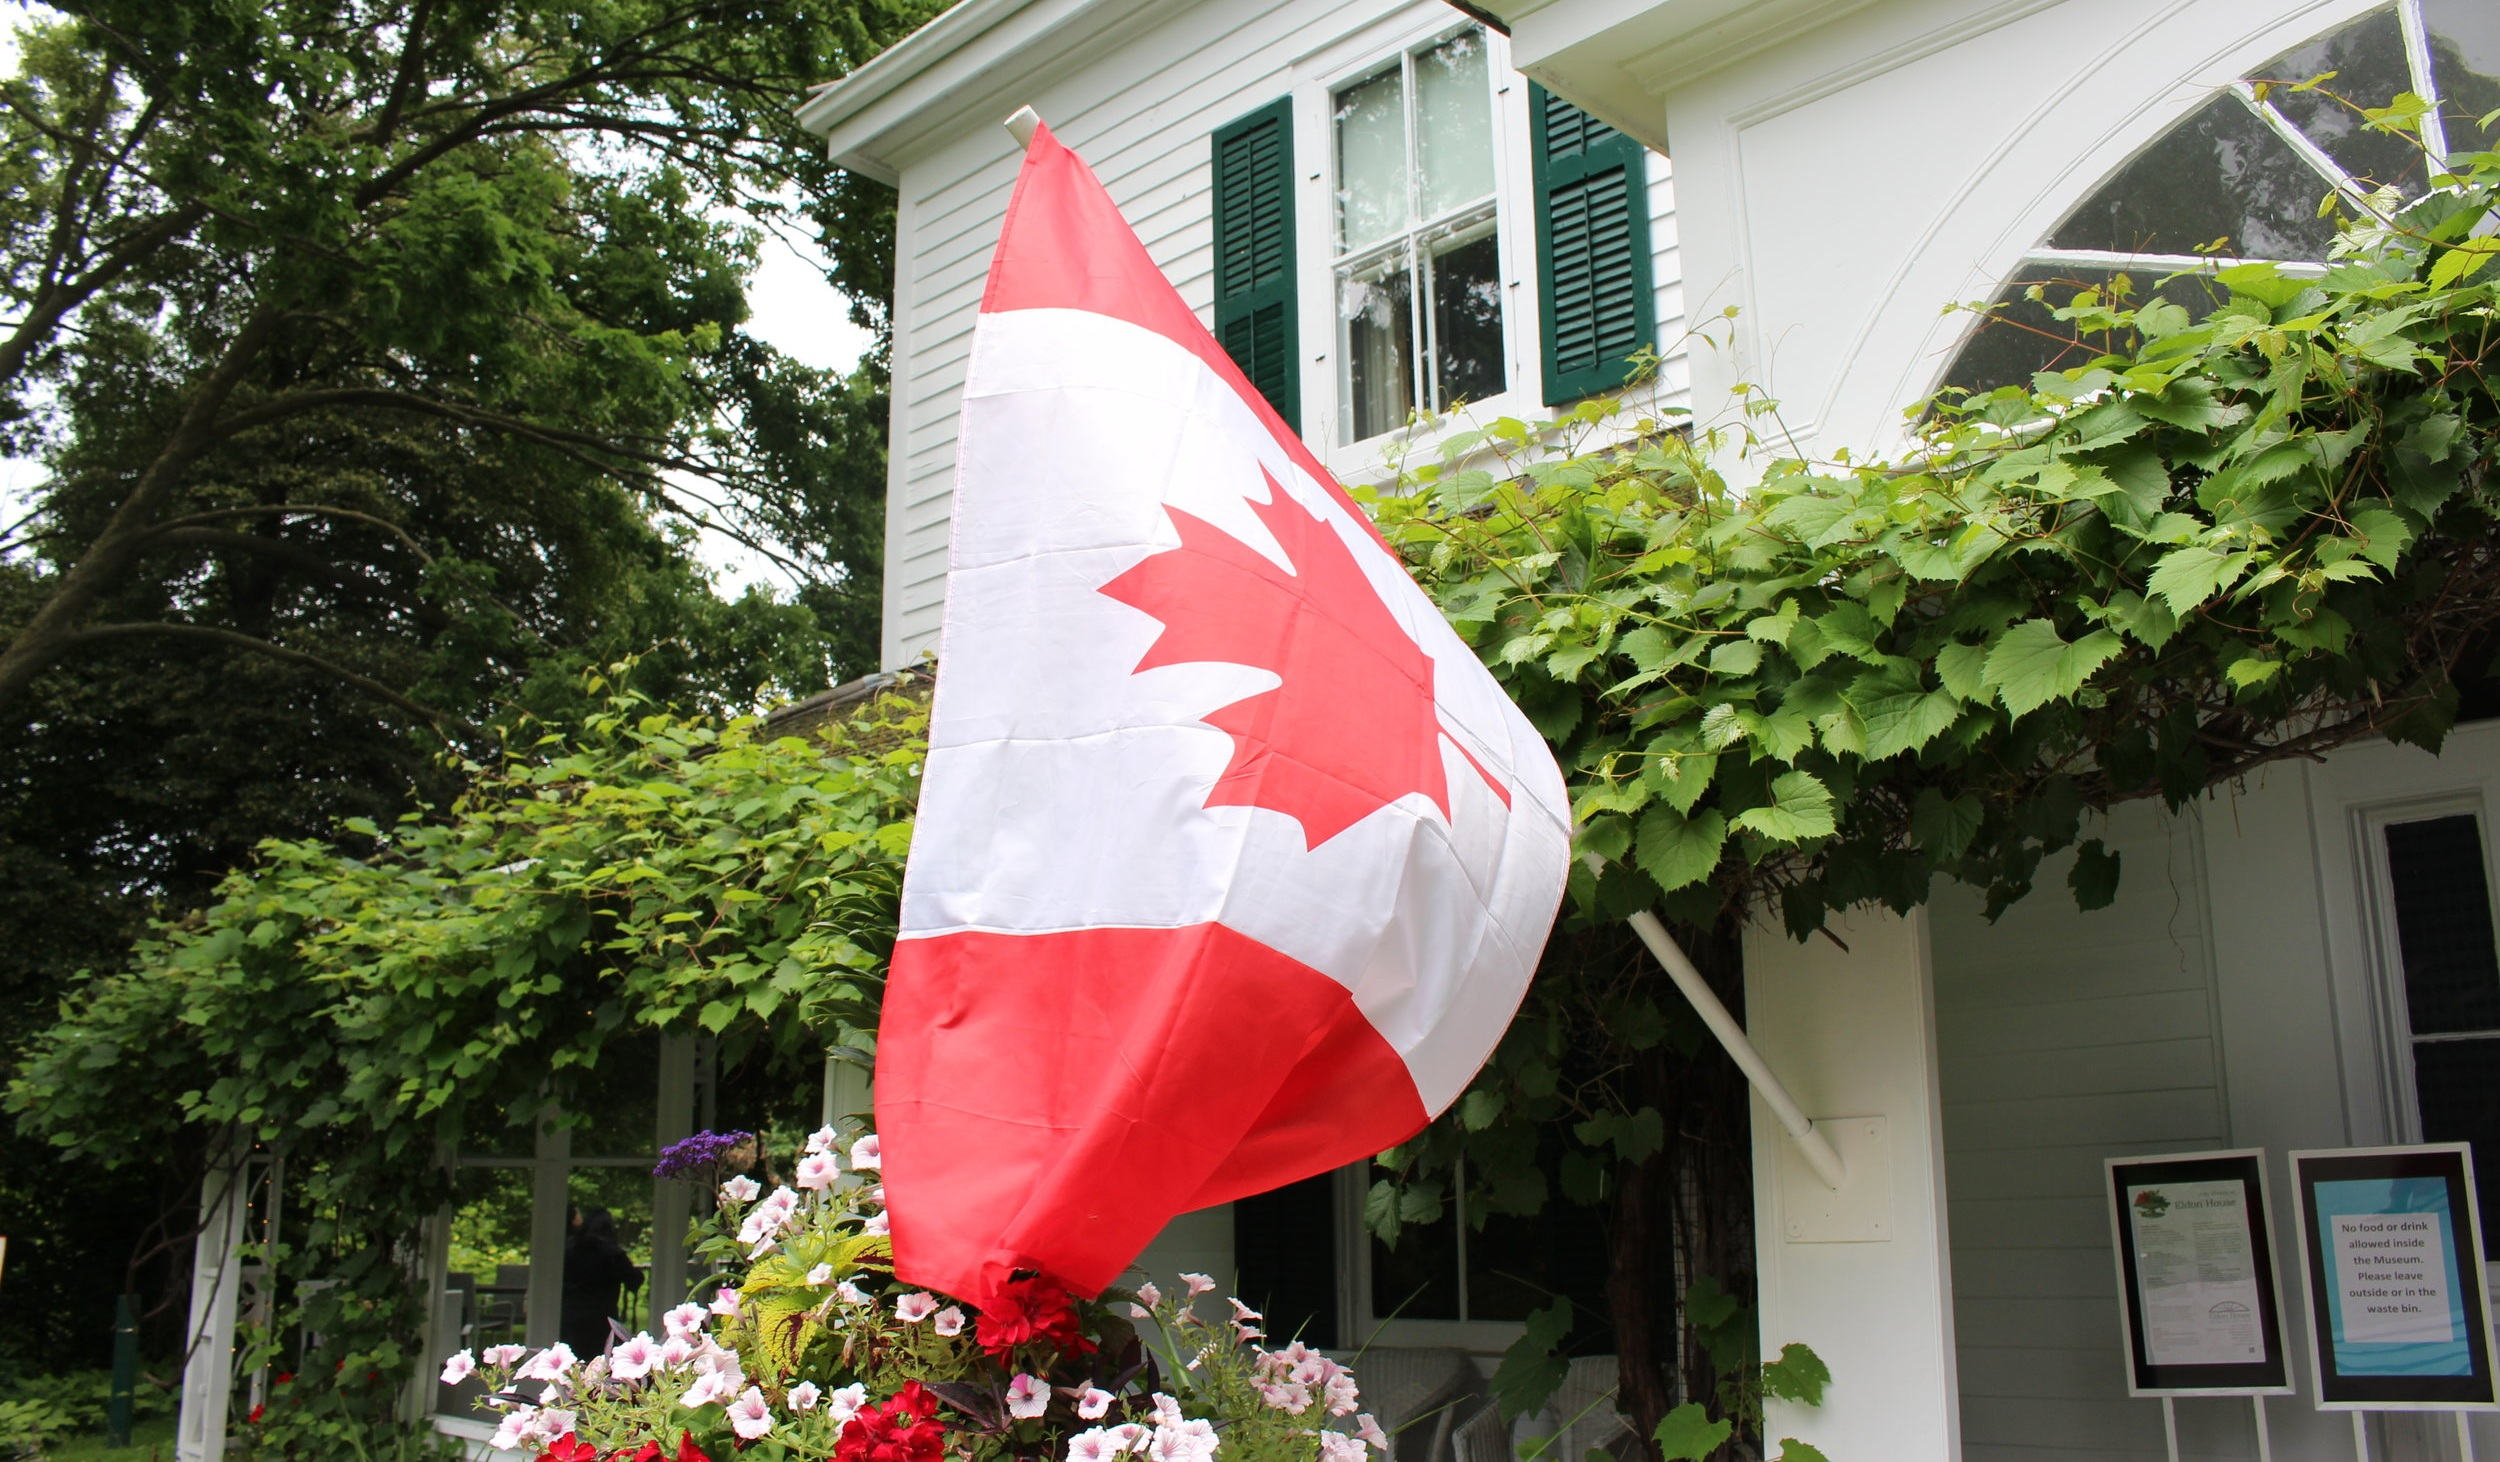 Canada Day at Eldon House - Monday, July 1st 12:00pm — 4:00pm481 Ridout Street North, London, ONThe Optimist Club of East London invites you to celebrate Canada Day at Argyle Arena! Enjoy a day of live music, fireworks, face-painting, giant-Lego, and more! Kids and adults alike can enjoy a free reptile show, inflatable bubble soccer, kick darts, and a baseball pitching radar. Throughout the day, there will be raffles, a free door prize, a selfie booth and more! No need to pack a picnic basket- there will be a cash BBQ and ice cream!